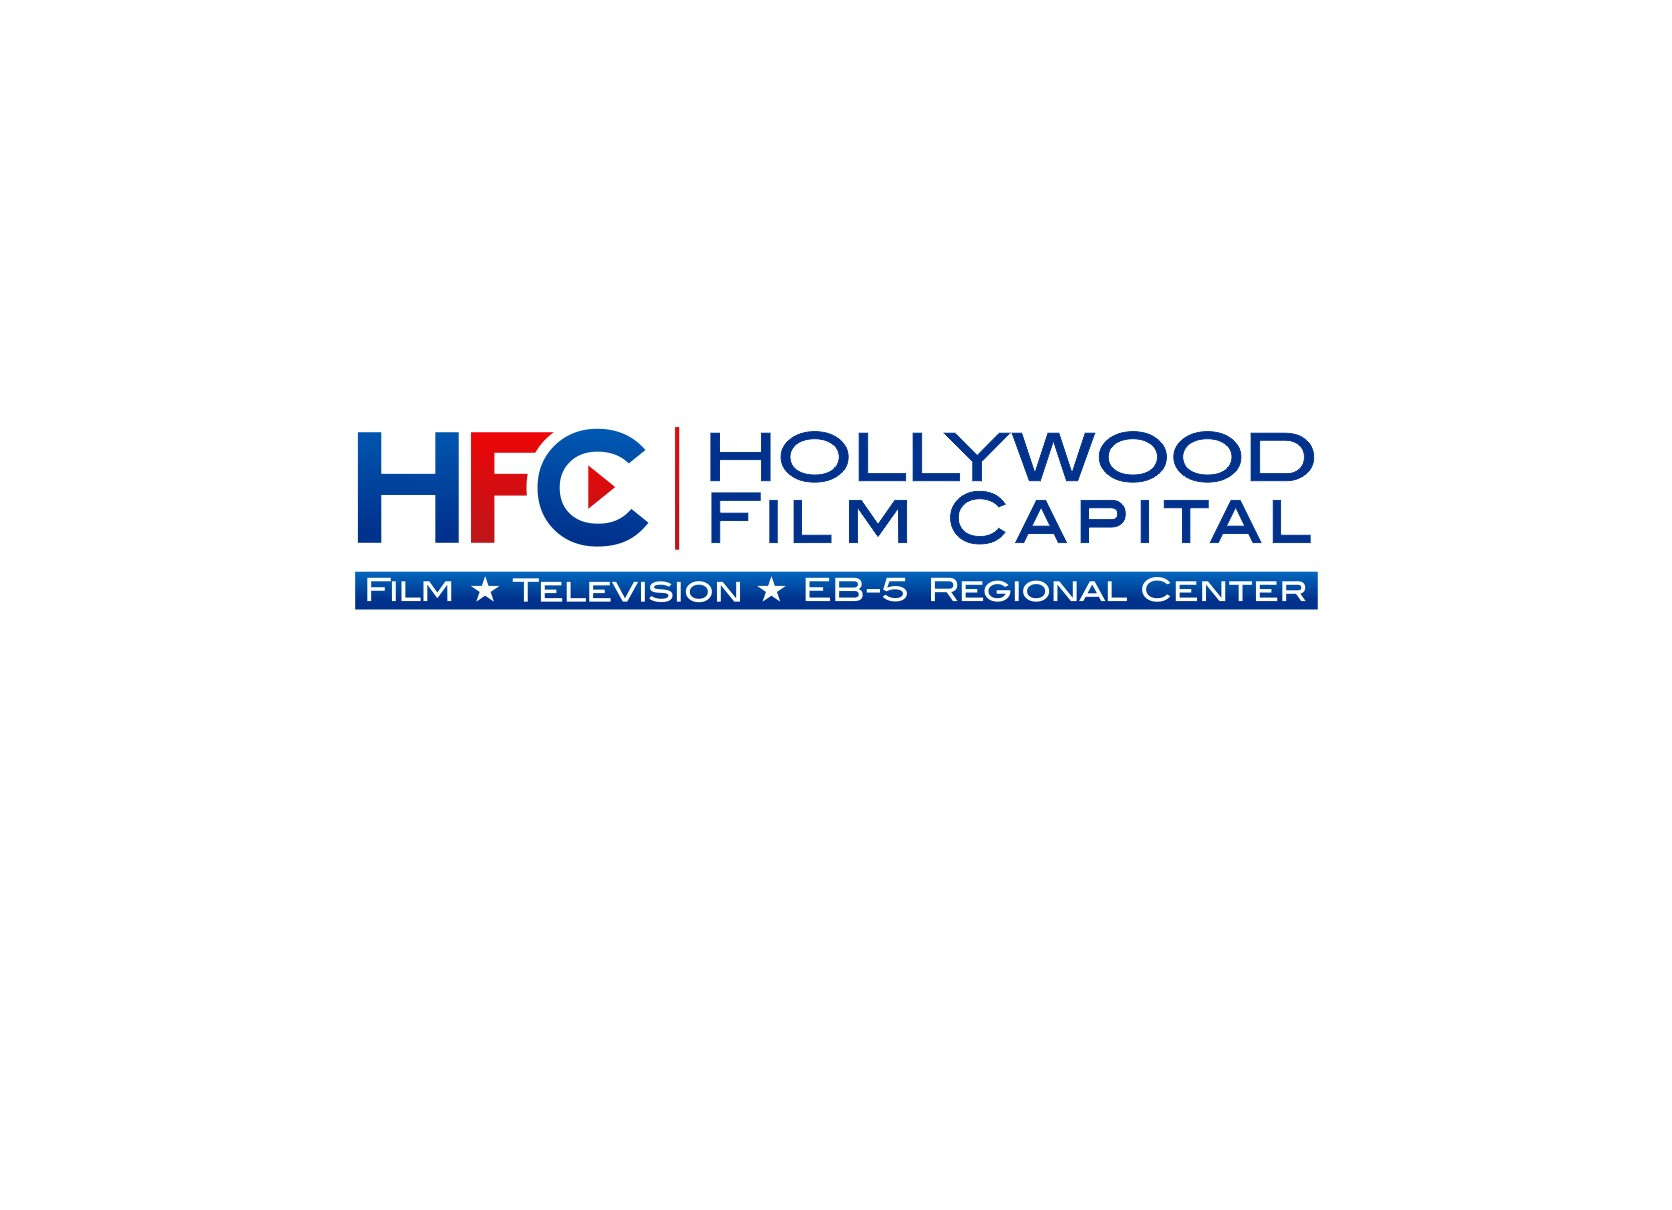 New logo wanted for Hollywood Film Capital